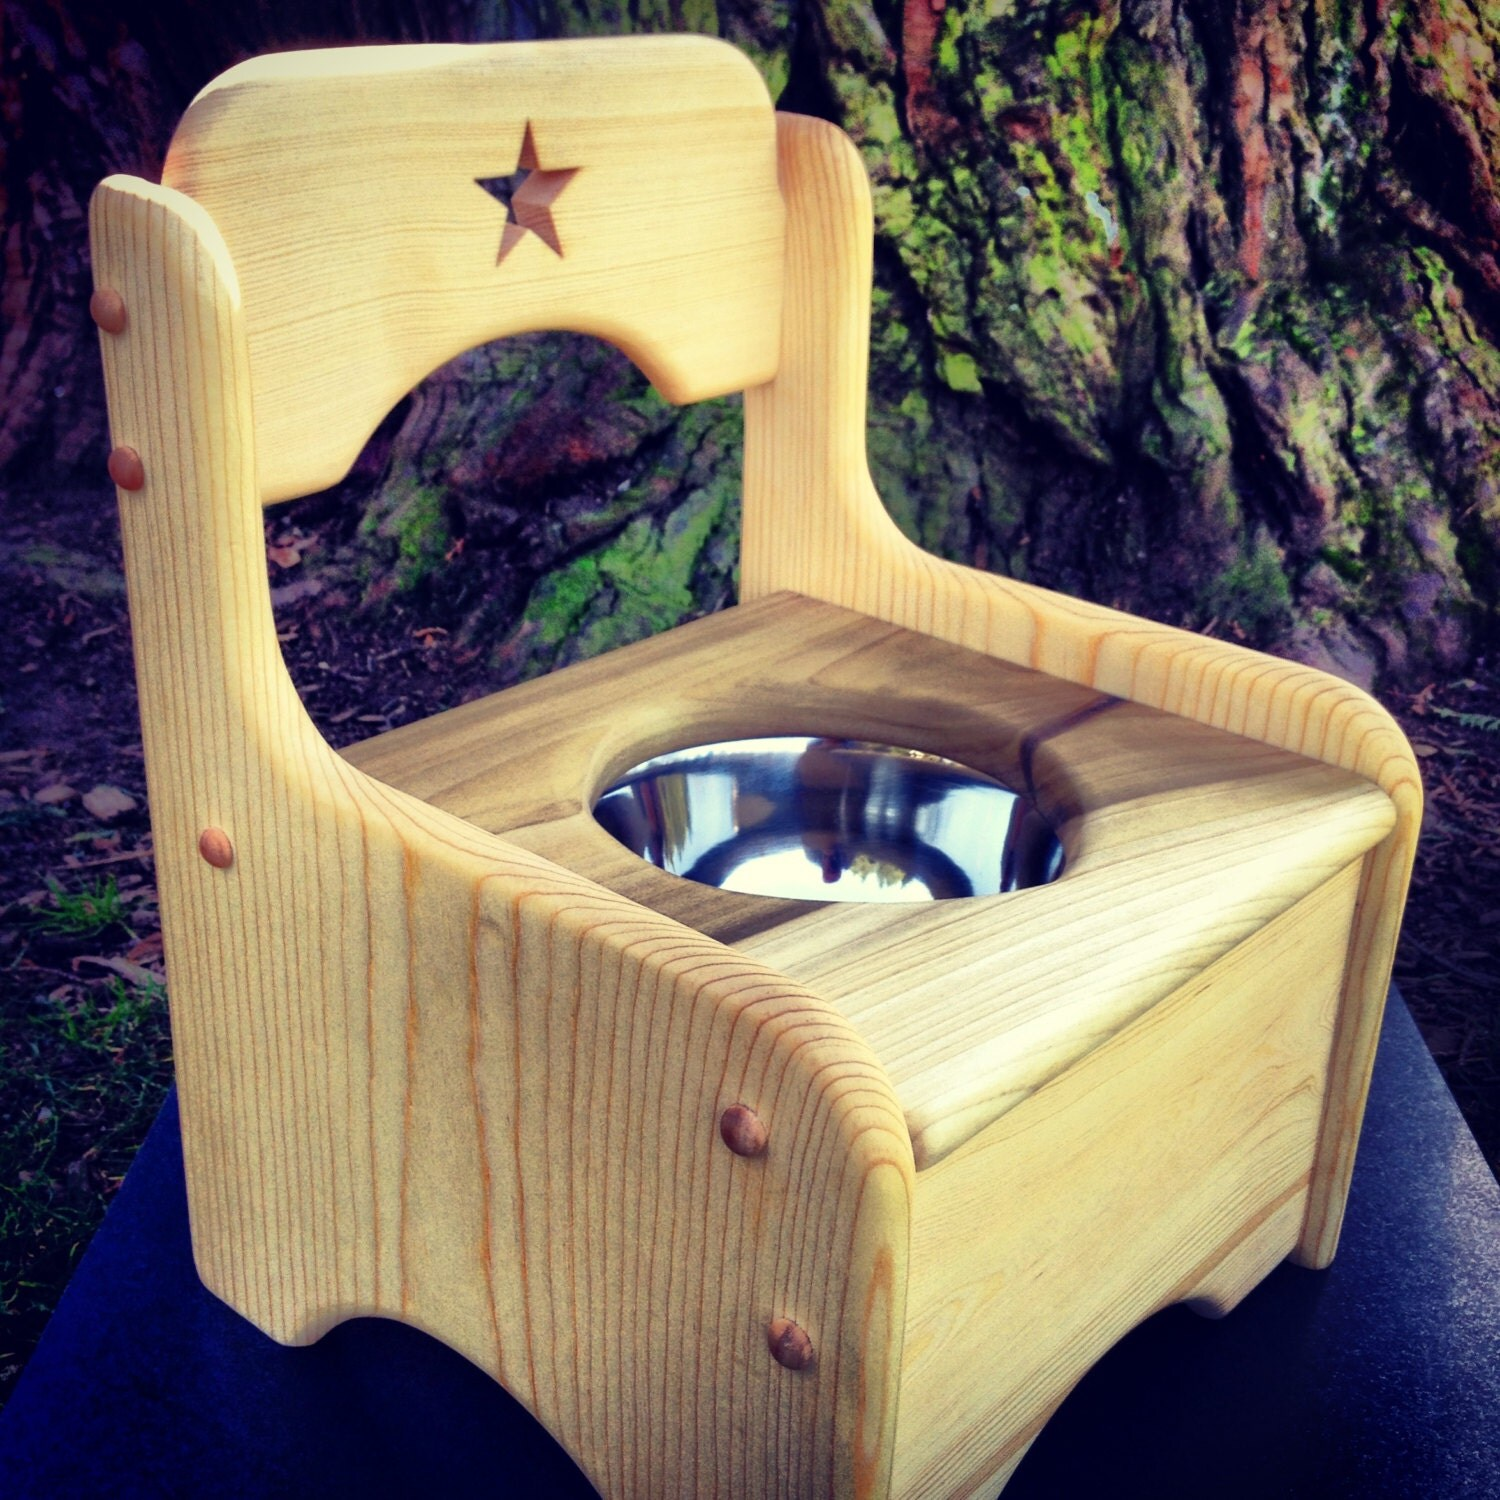 Star Potty Chair by Heartwood Natural Toys